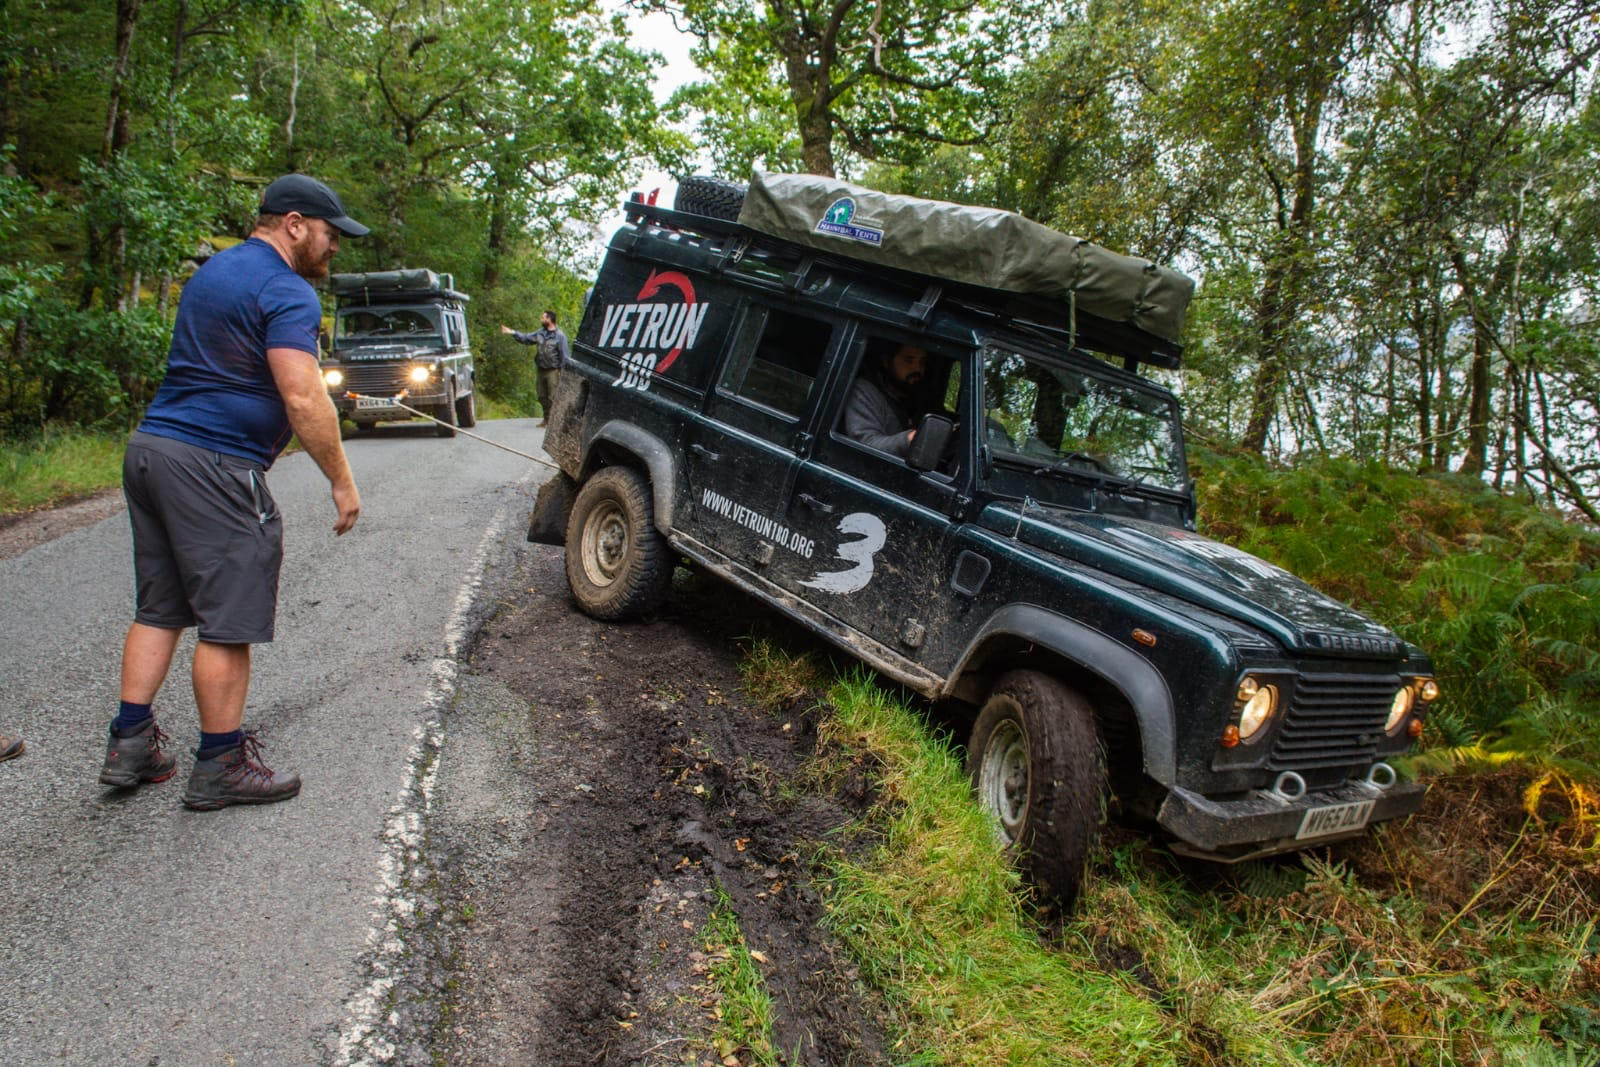 Overcoming challenges together as a team - VetRun180 & Sandgrouse Travel & Expeditions